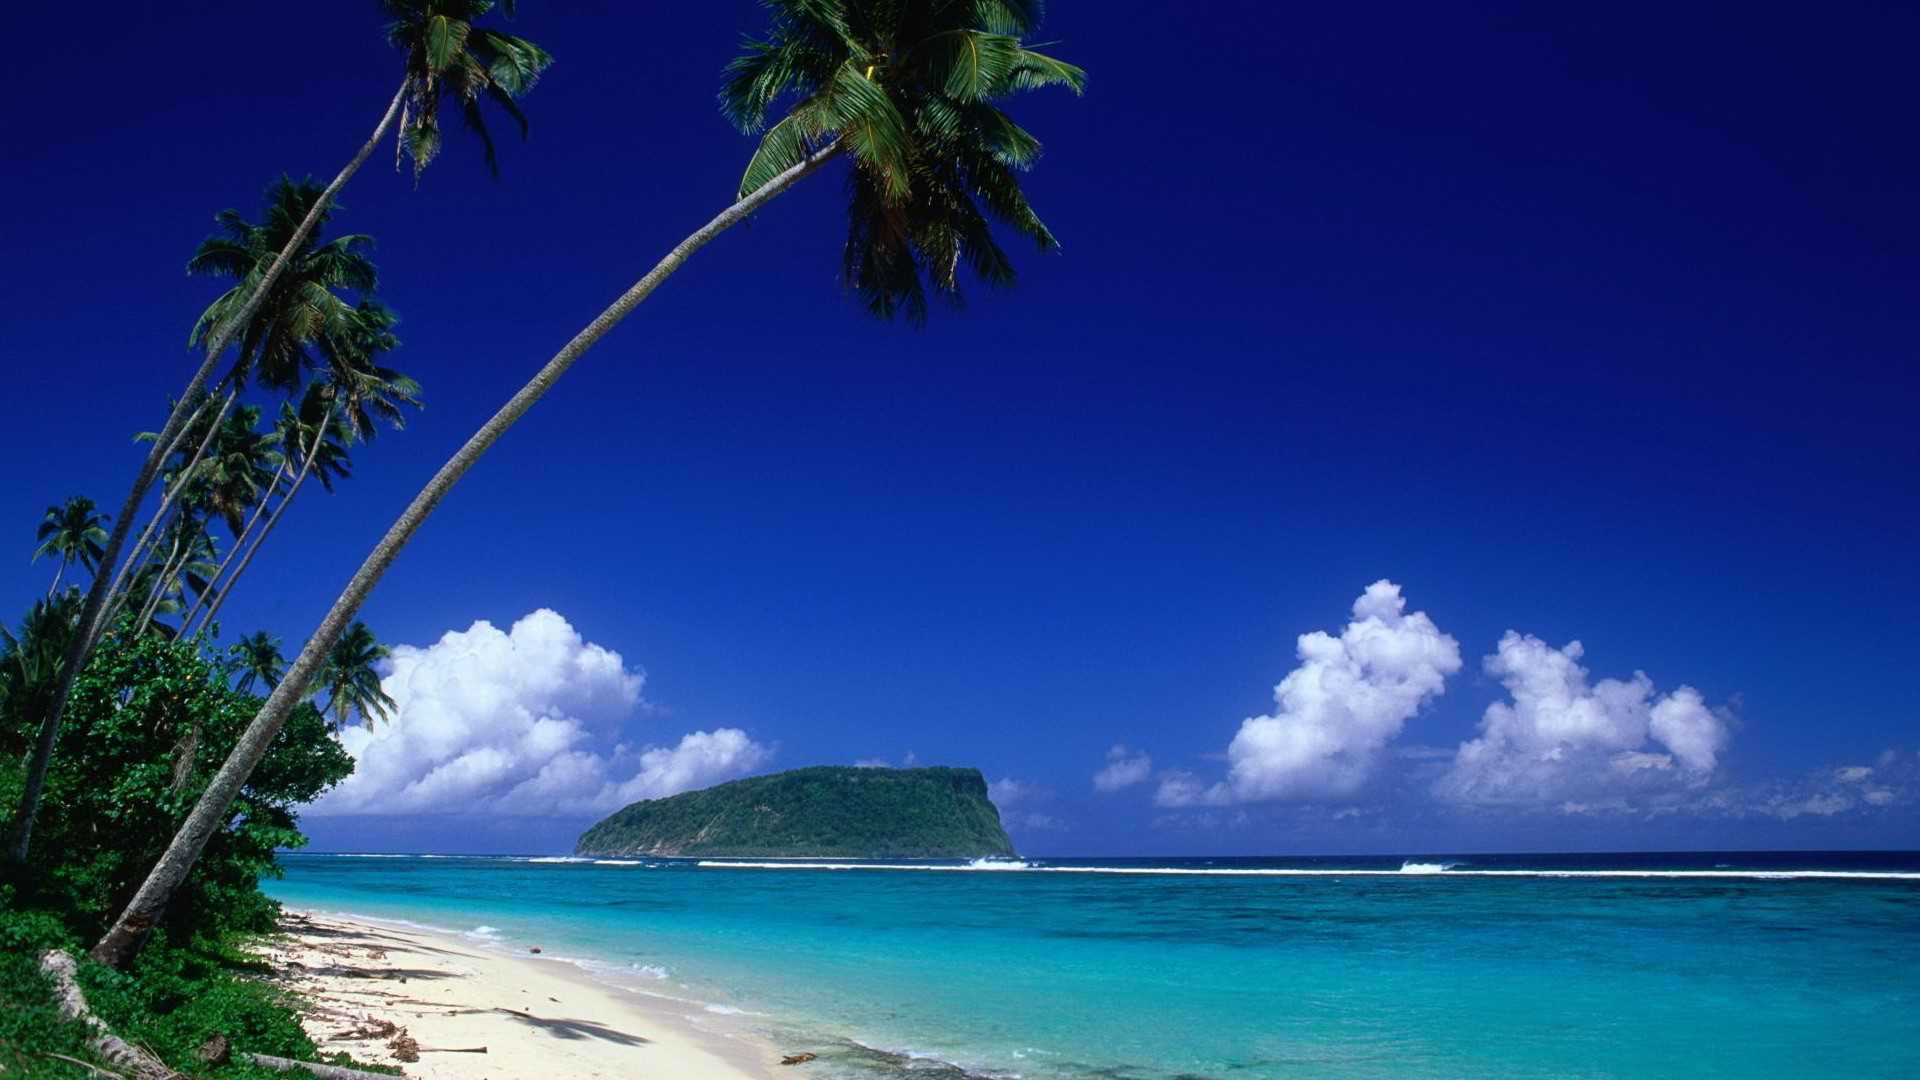 Samoa Wallpapers Photos And Desktop Backgrounds Up To 8K 7680x4320